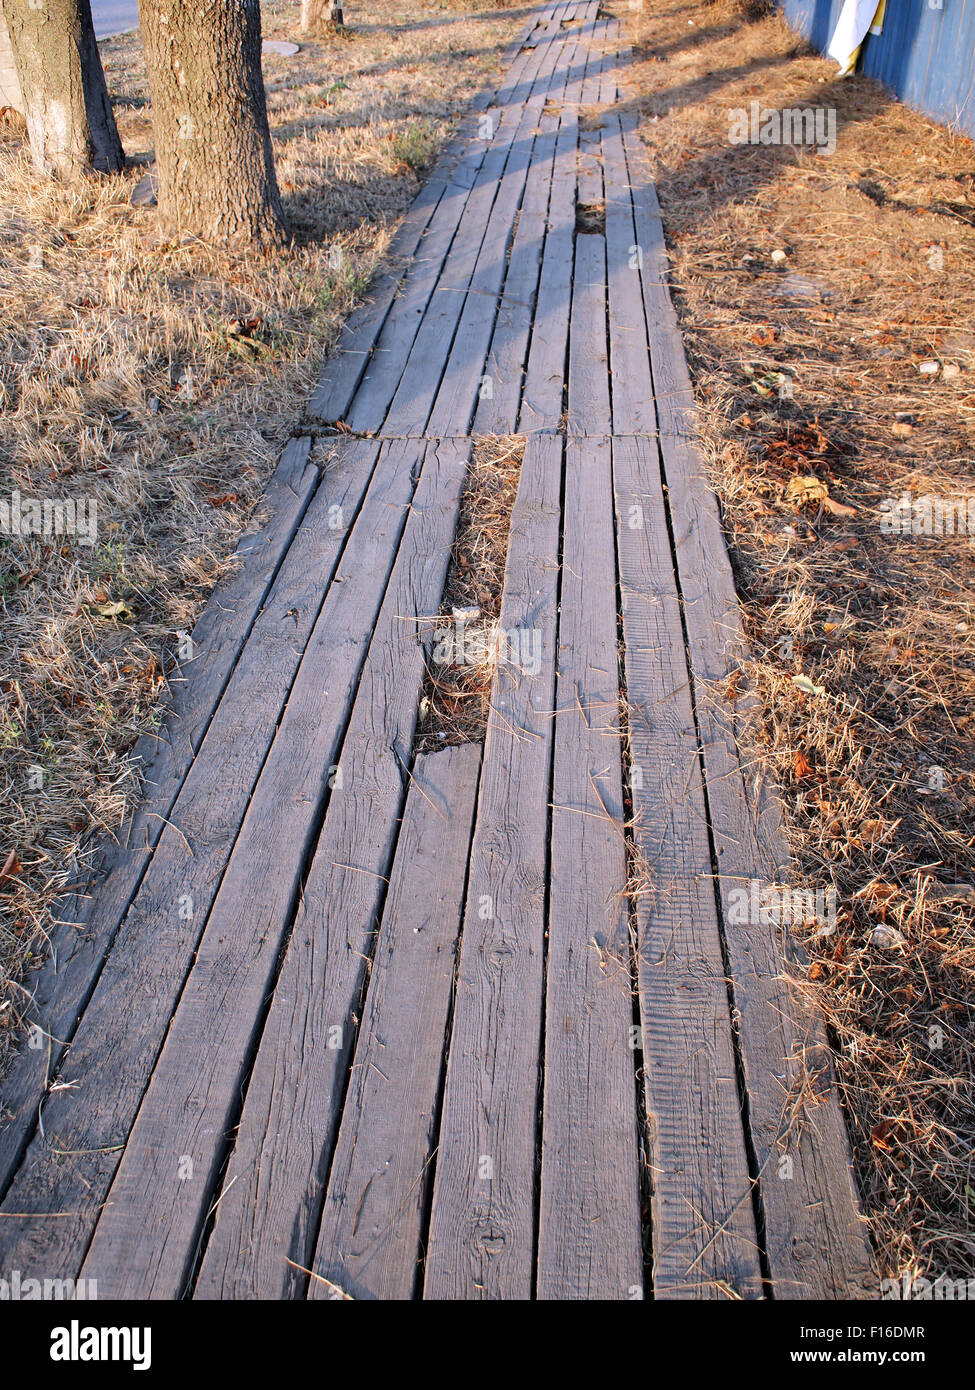 Wooden Walkway Made Of Planks Laid On The Ground Among Dry Grass